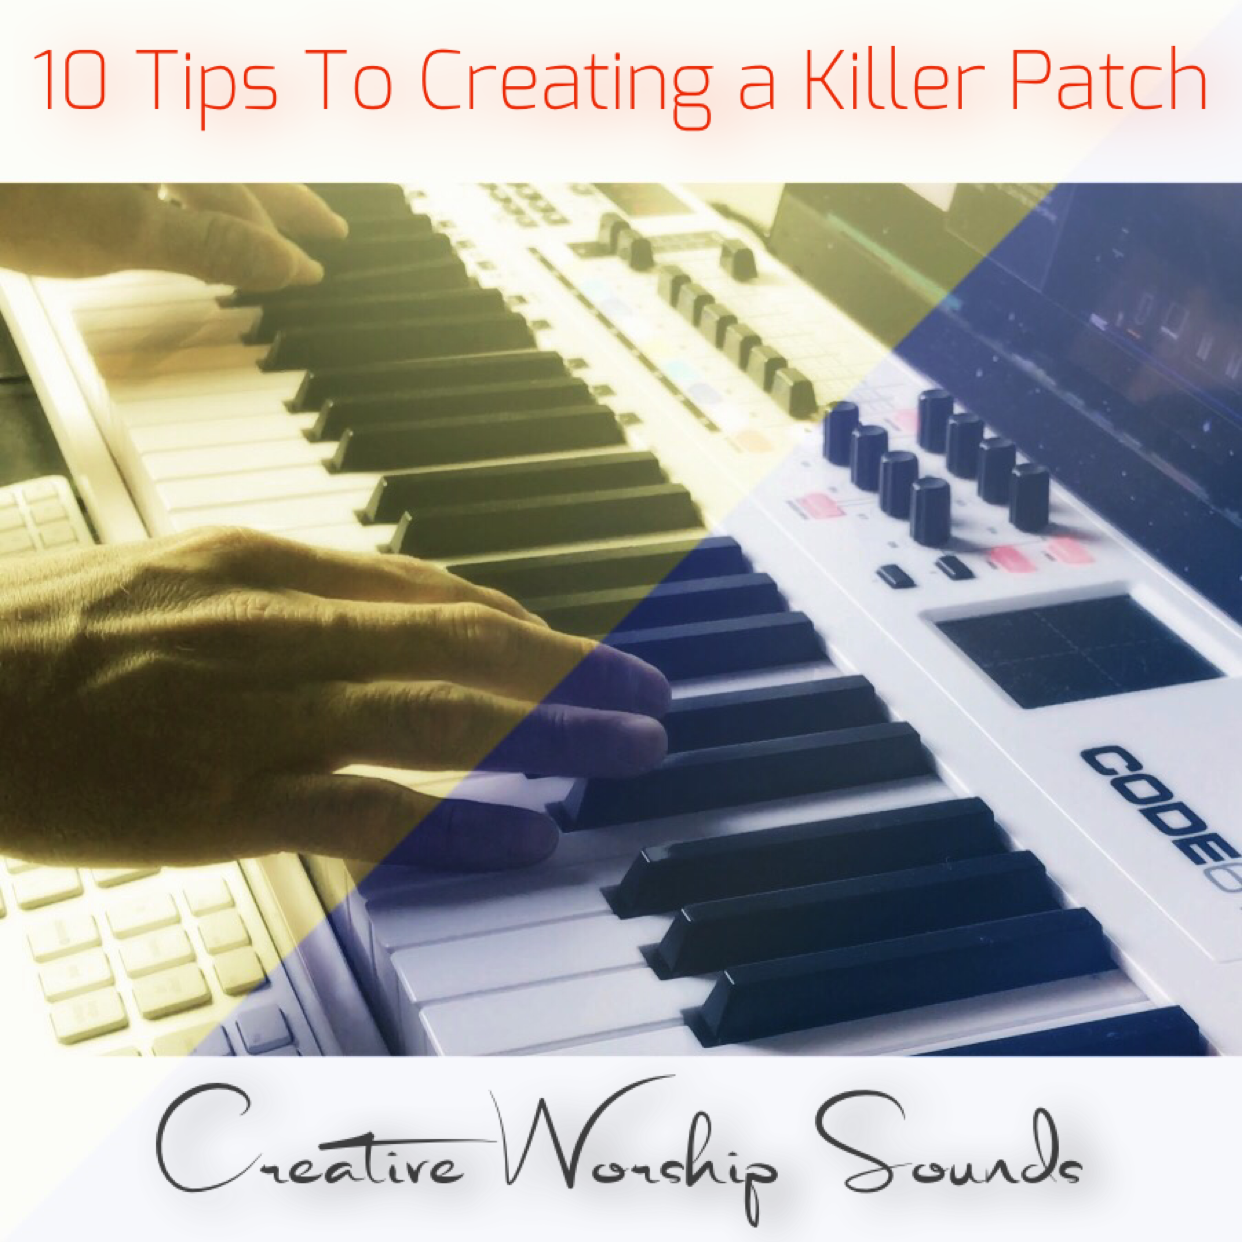 10 Tips To Creating a Killer Patch — Creative Worship Sounds